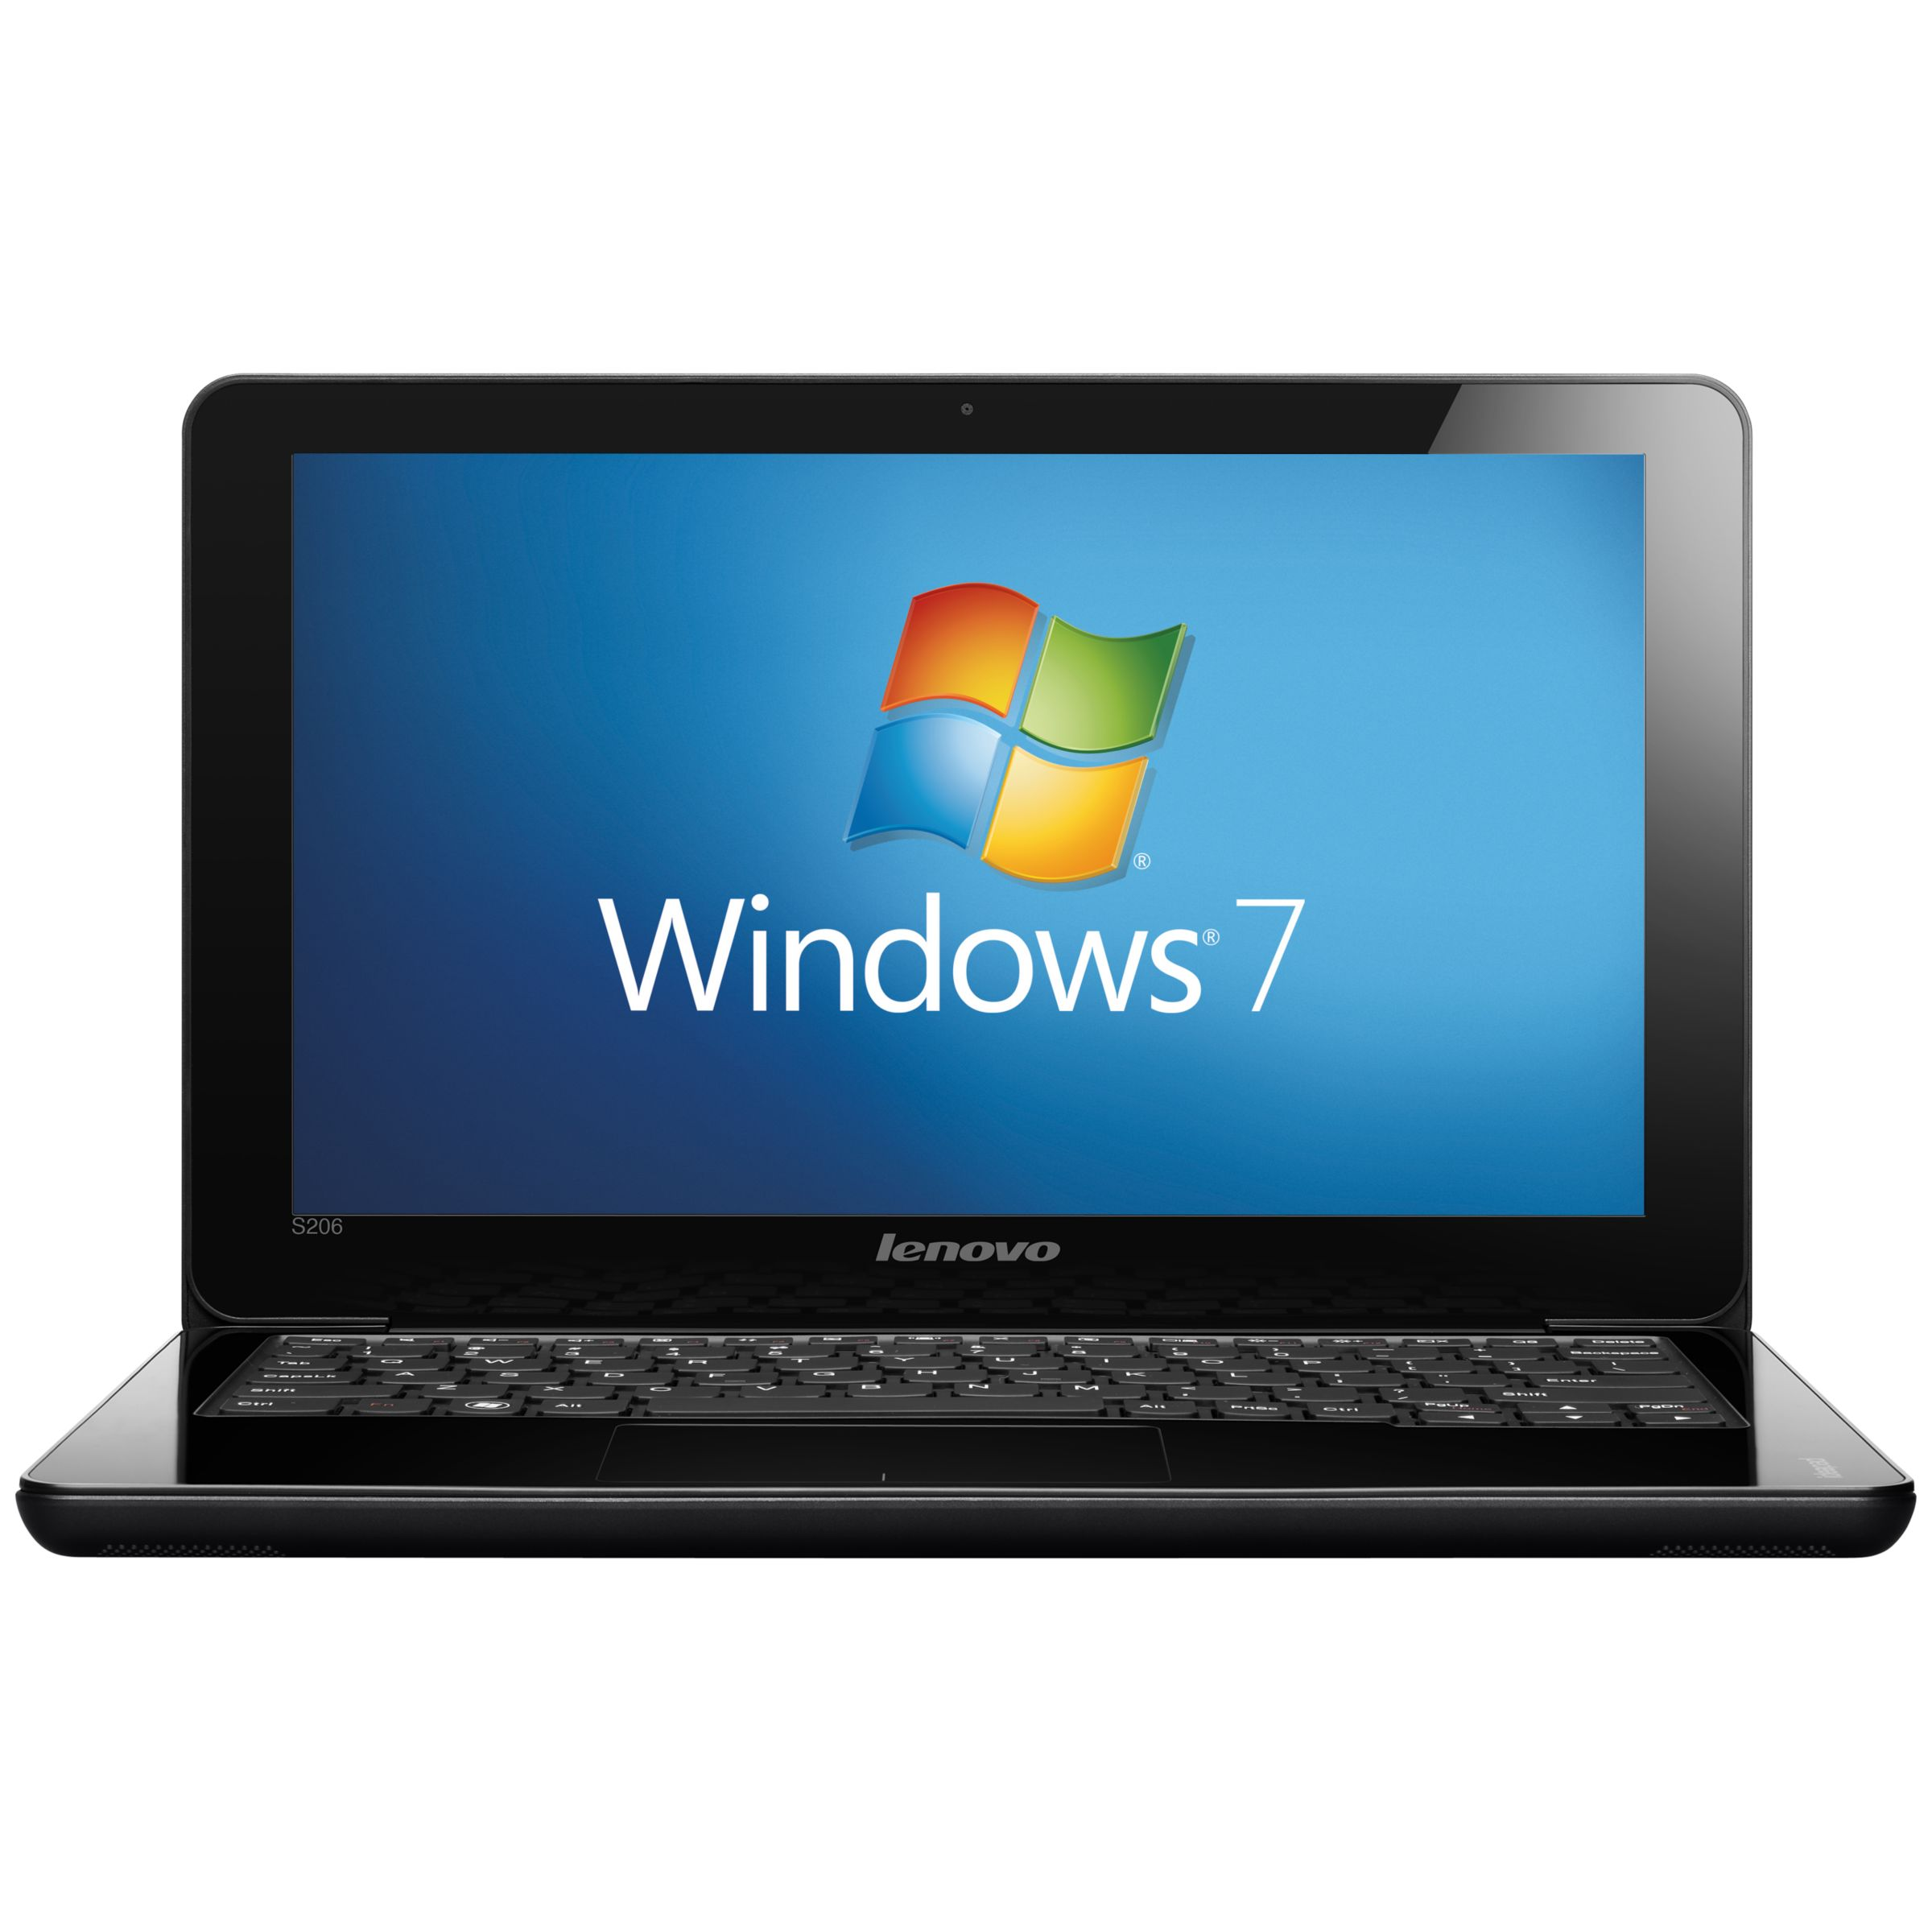 Lenovo Ideapad S206 Netbook, Amd E1200, 1.4ghz, 4gb Ram, 320gb With 11.6 Inch Display, Grey